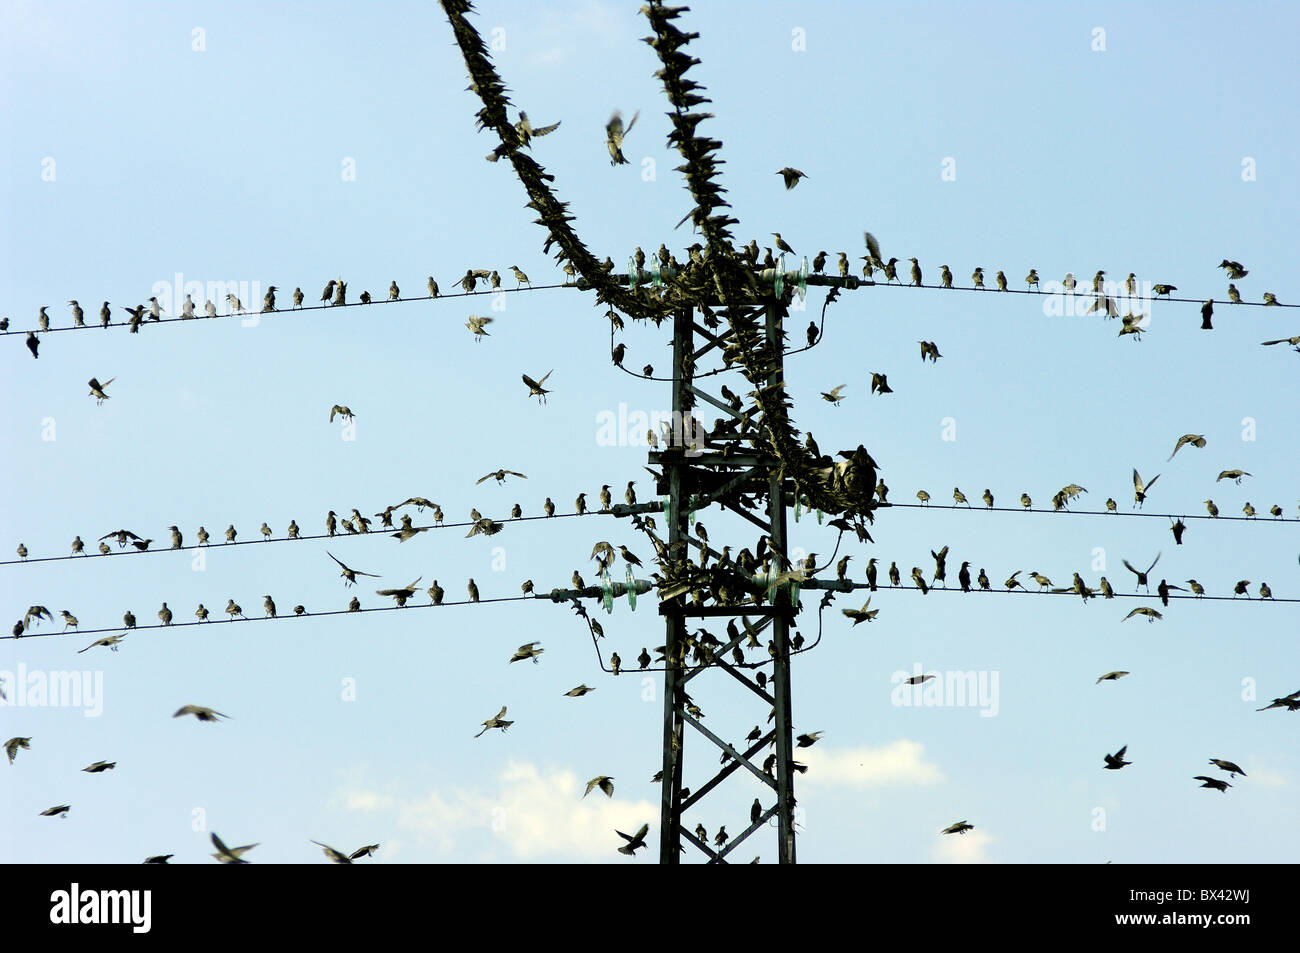 A flock of blackbirds perched on the line. - Stock Image